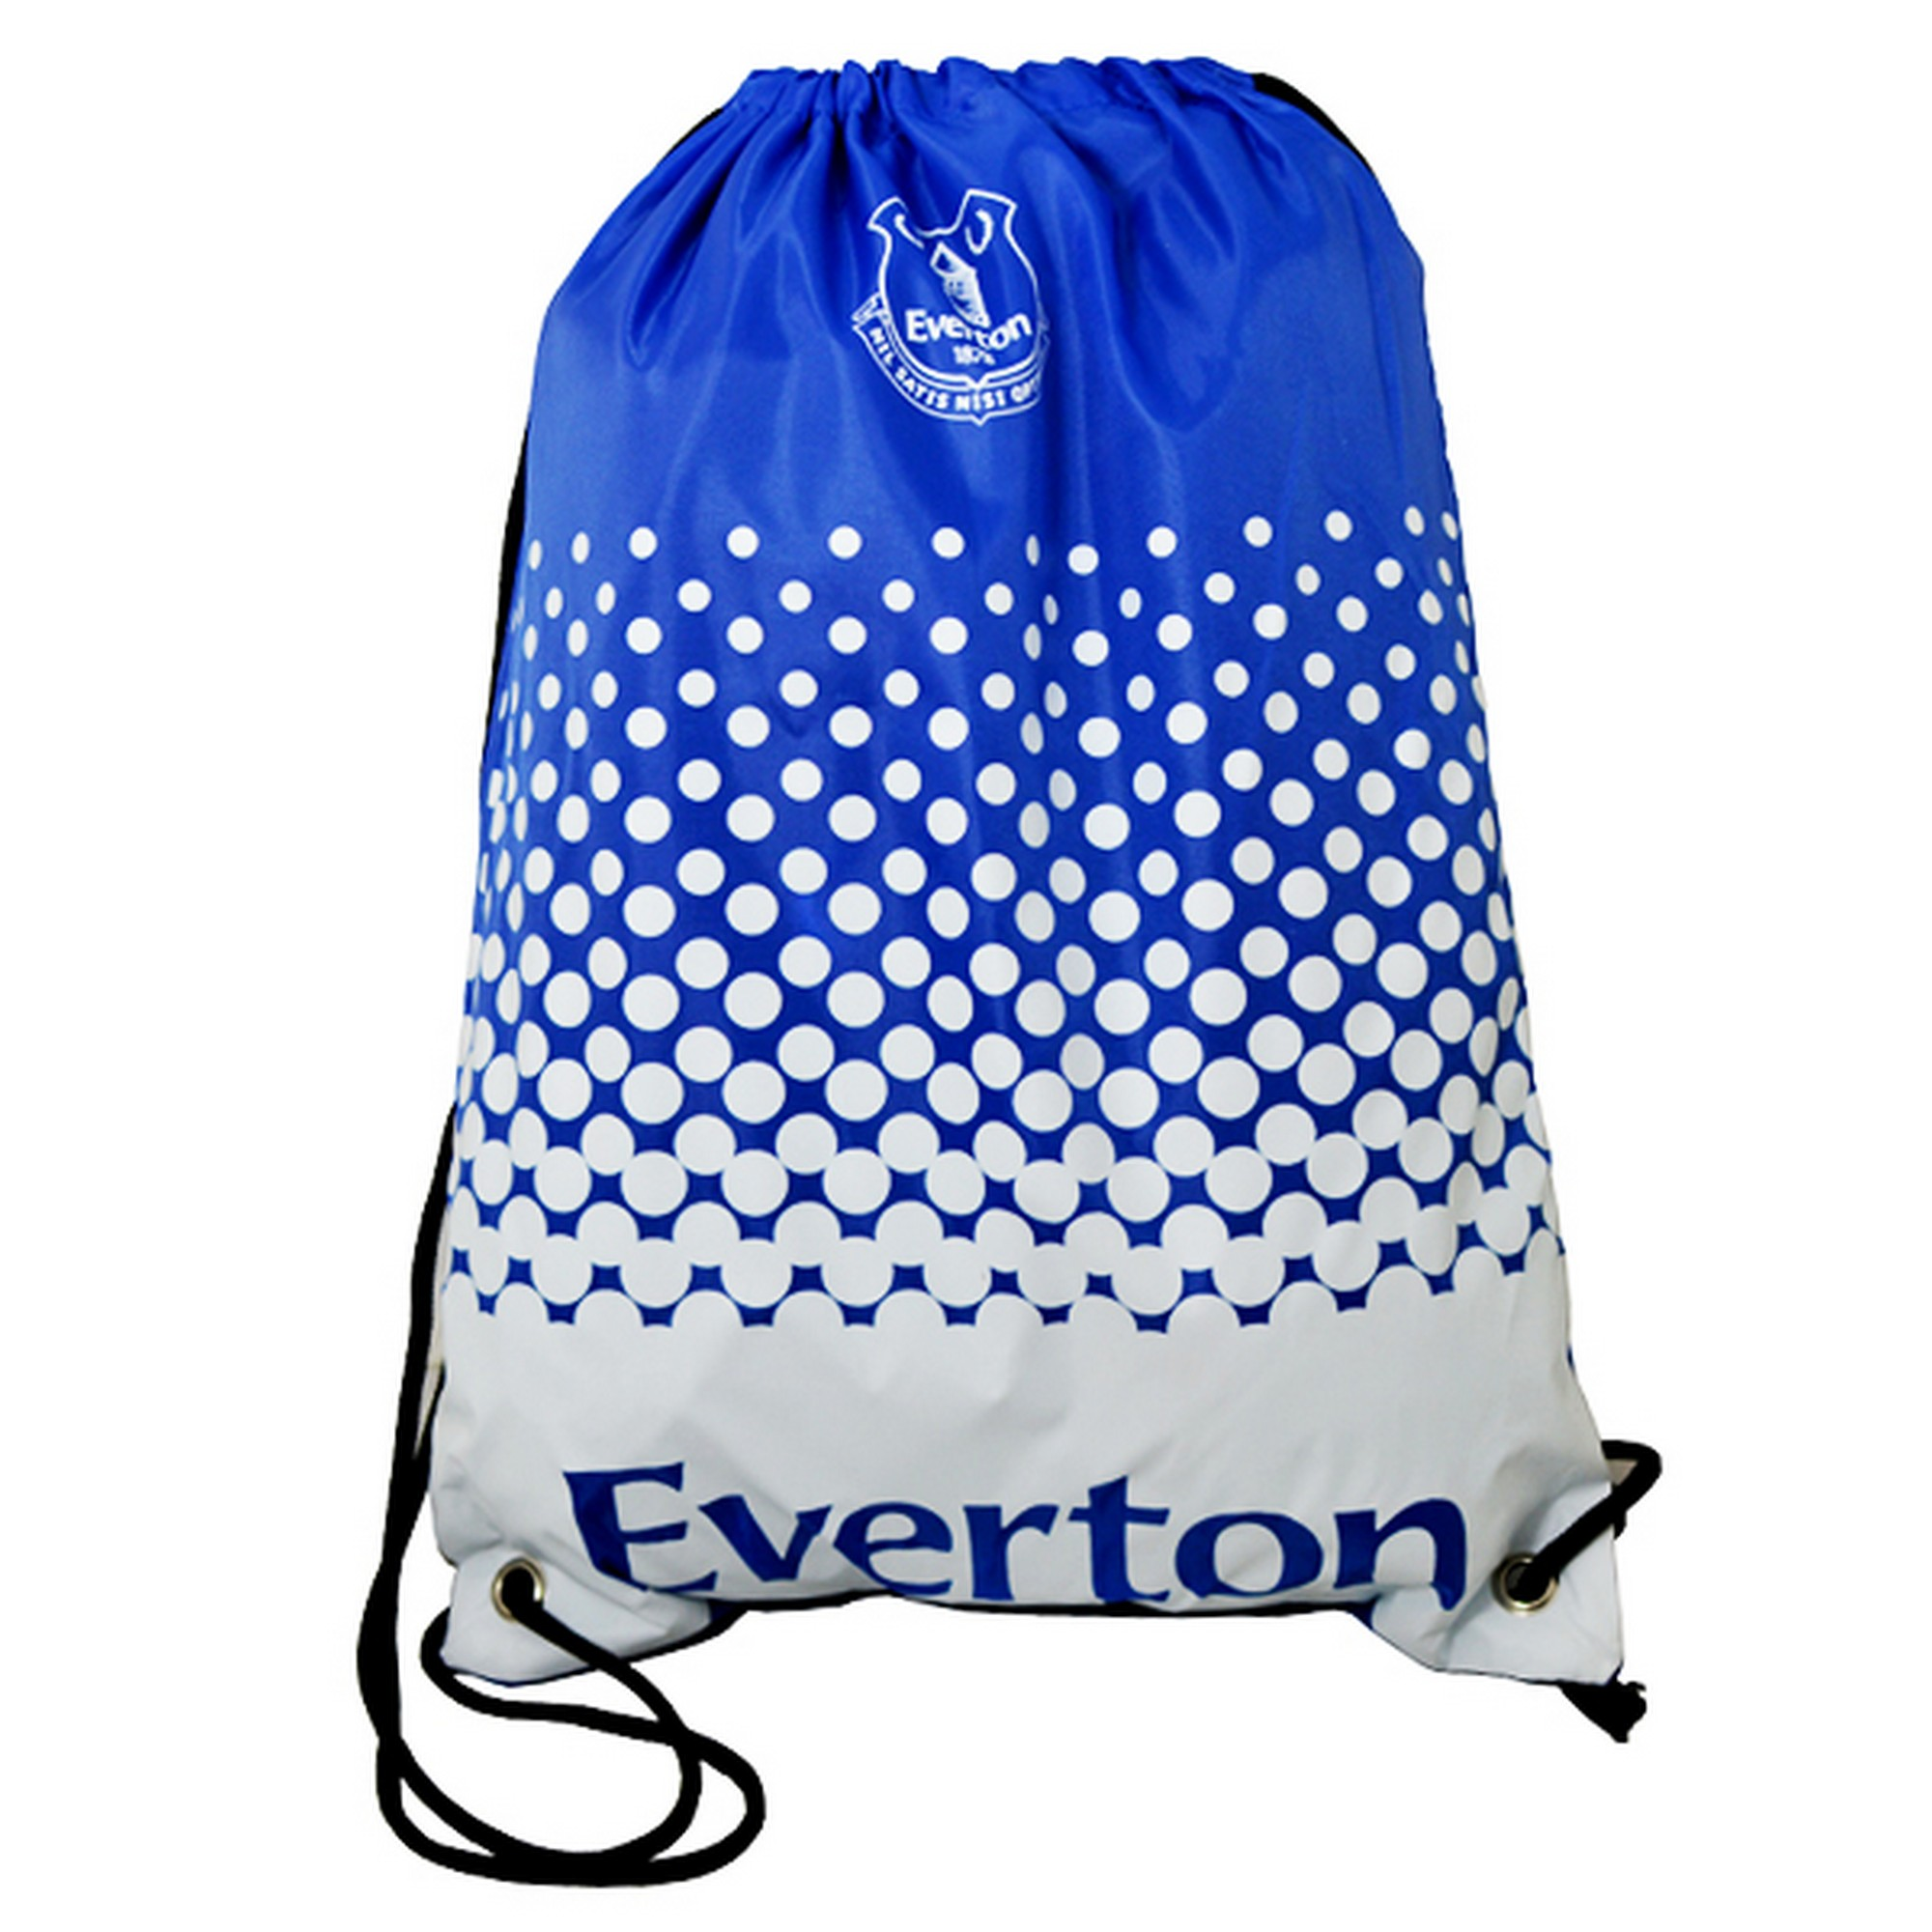 Everton FC Official Football Crest Gym Bag (One Size) (Blue/White)